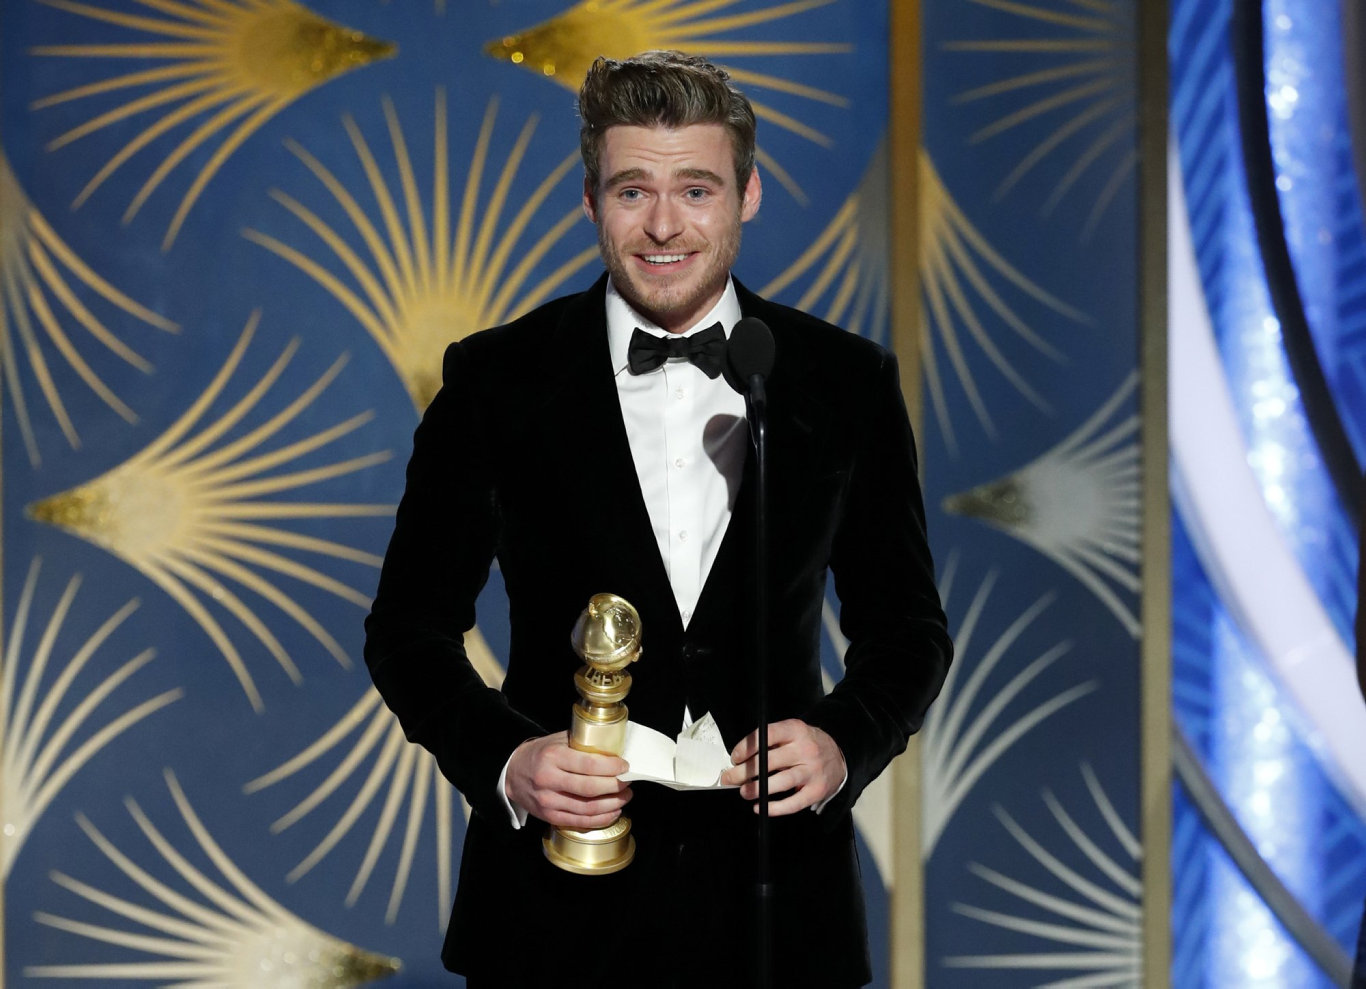 Richard Madden accepting the award for best actor in a TV drama series for his role in